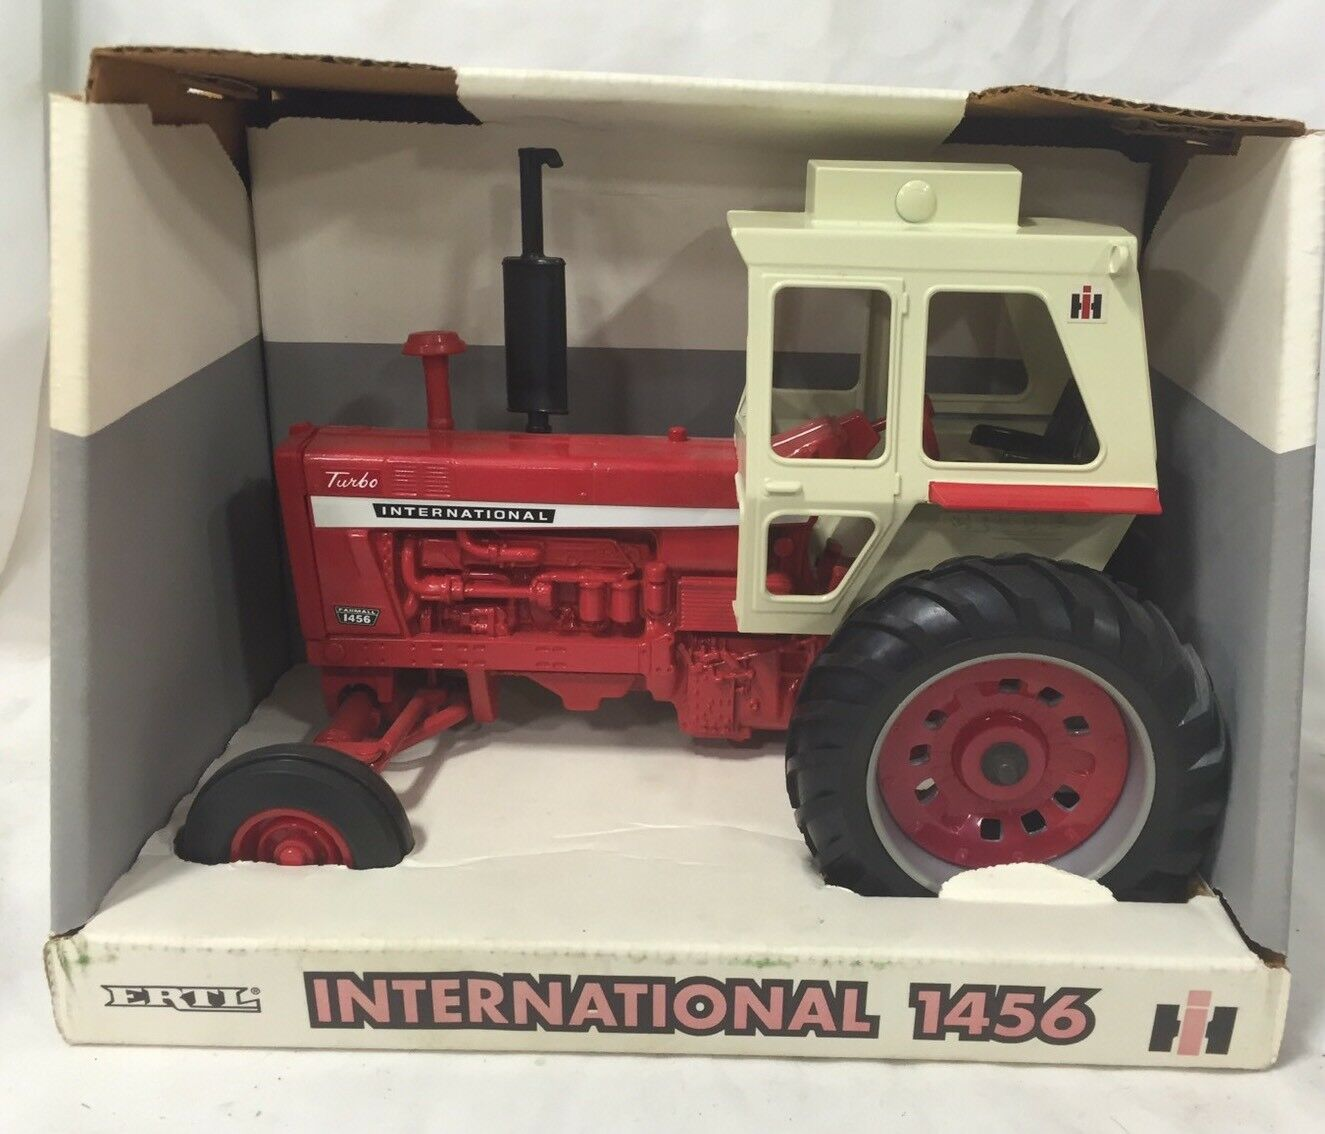 ERTL International 1456 1 16 NEW IN BOX